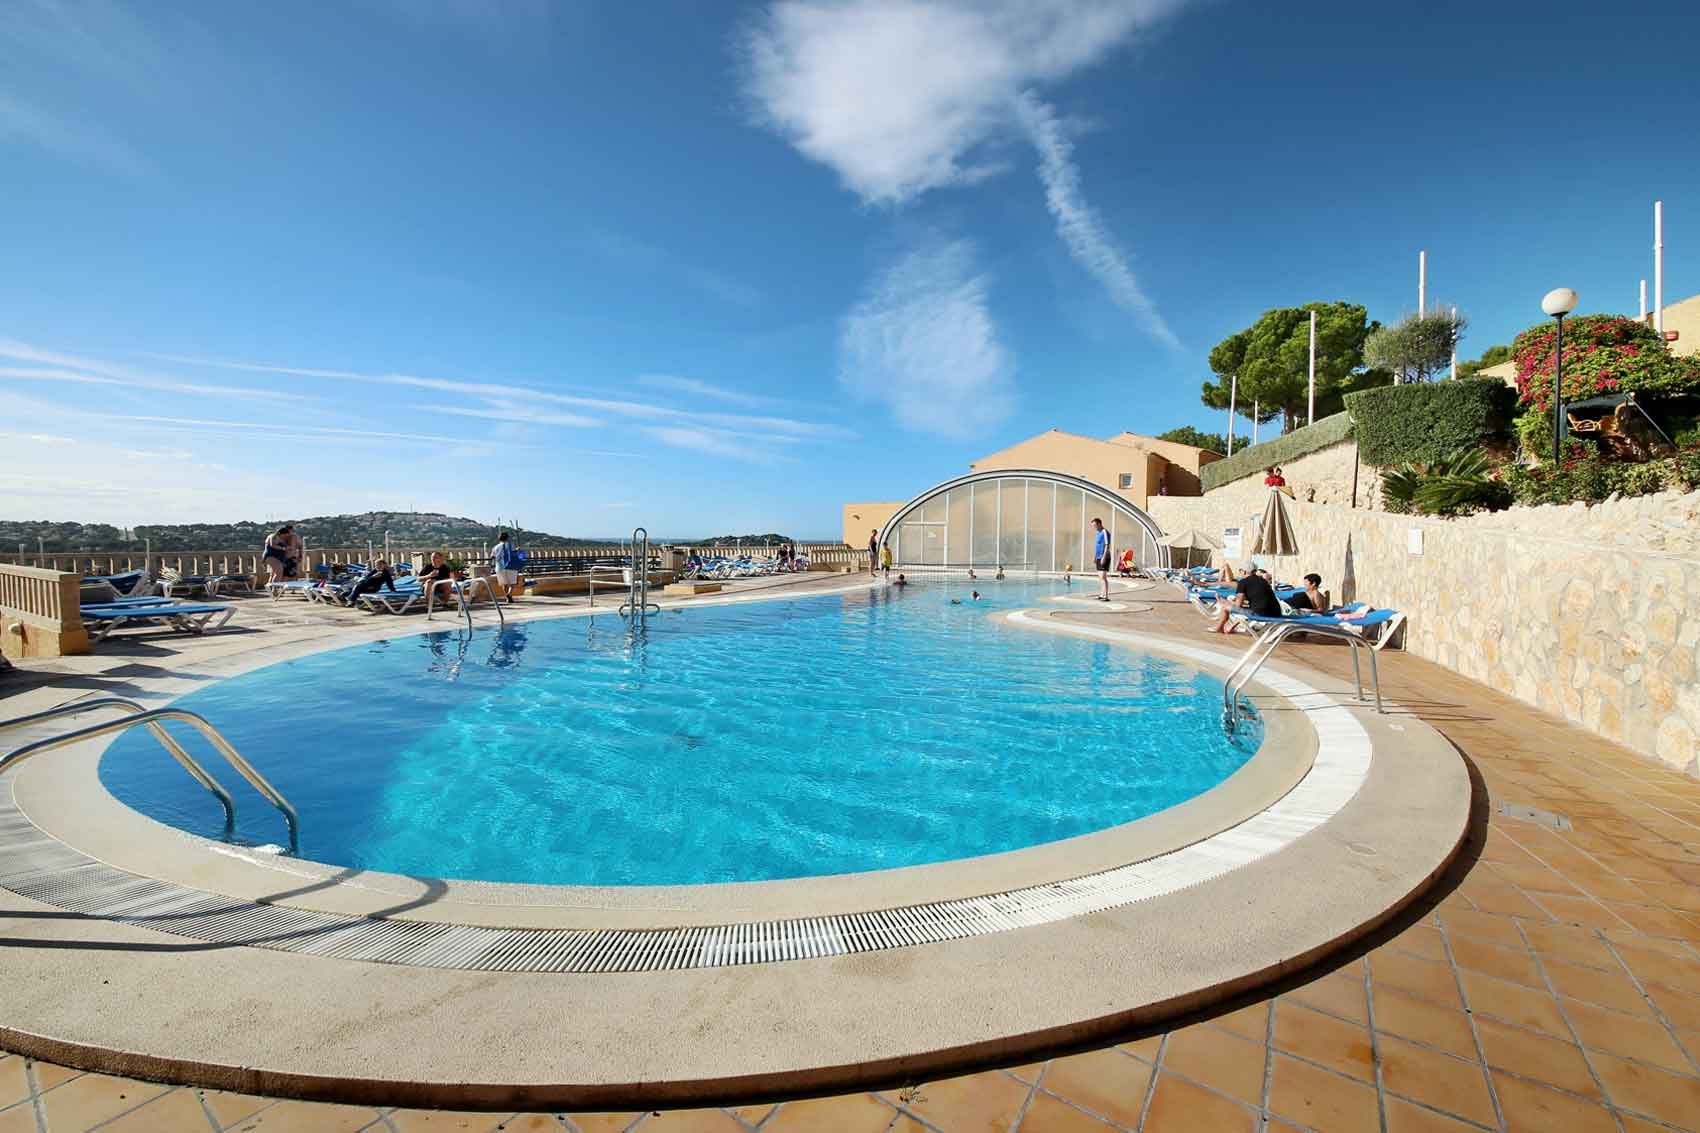 Club Santa Ponsa in Santa Ponsa Majorca Holidays from 212pp